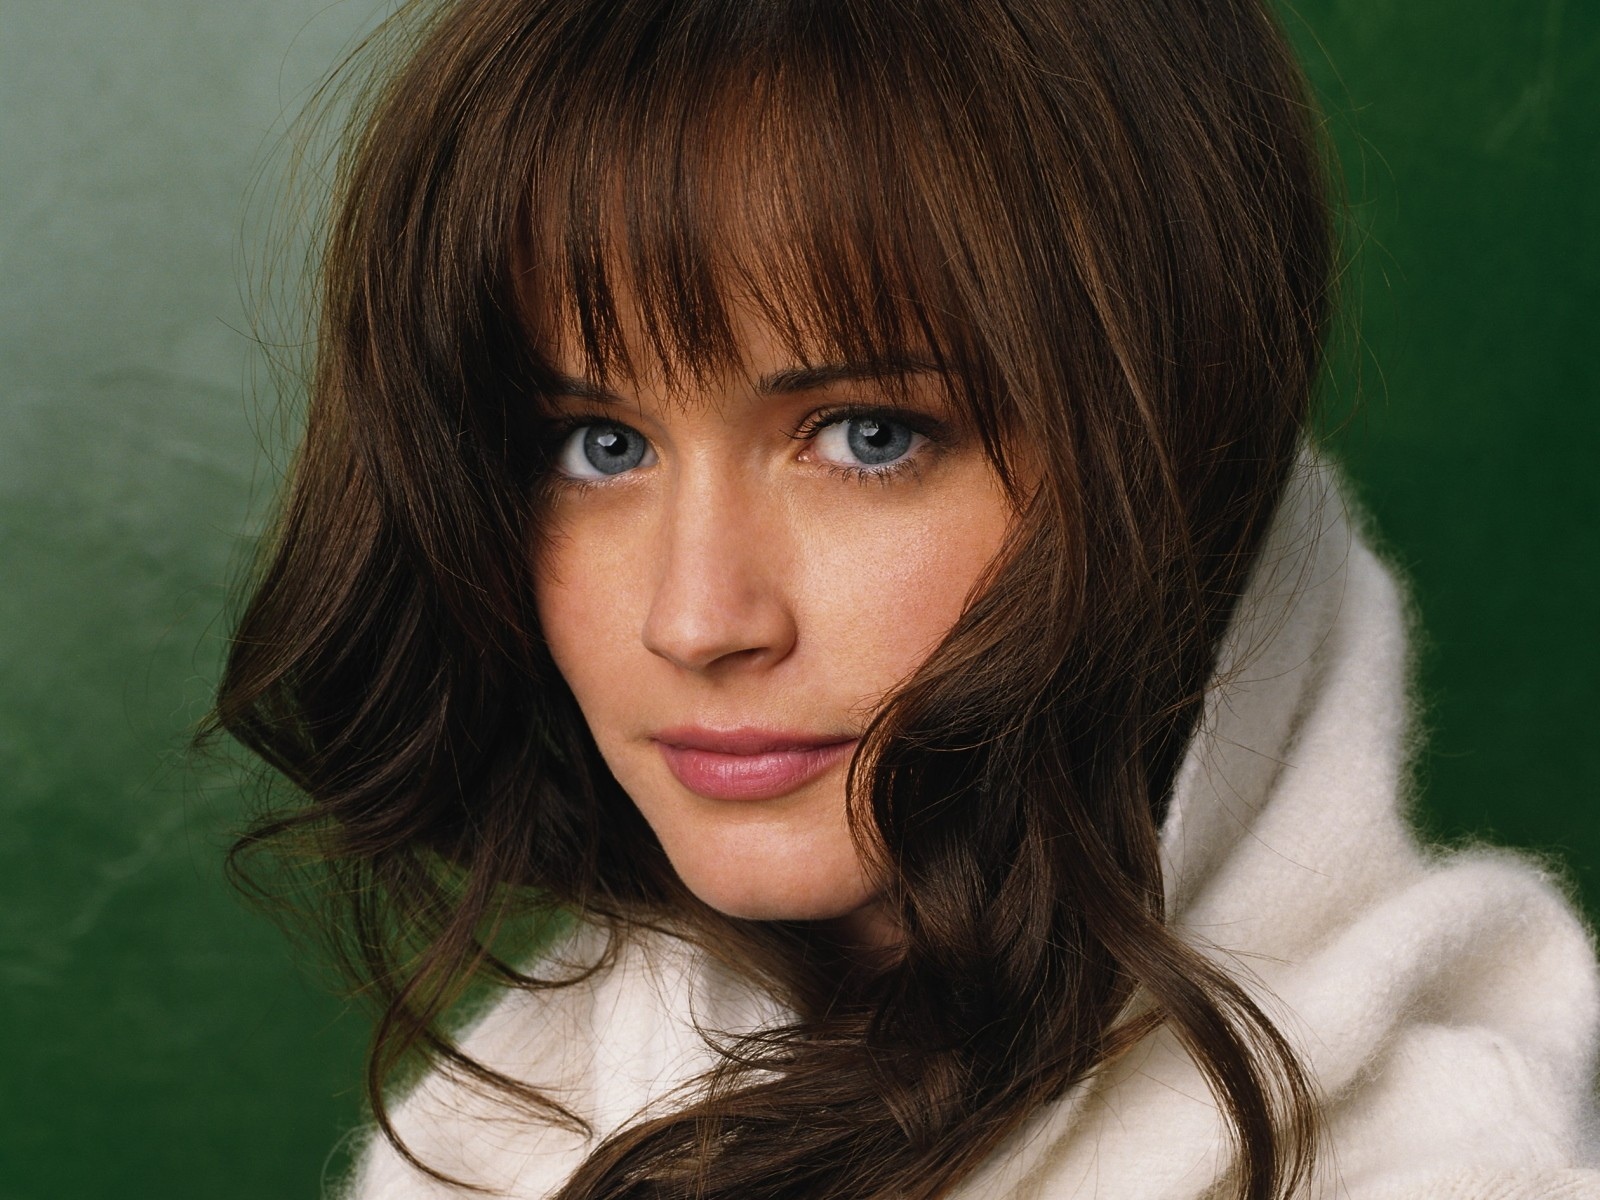 Long Wavy Cute Hairstyles, Long Hairstyle 2011, Hairstyle 2011, New Long Hairstyle 2011, Celebrity Long Hairstyles 2115